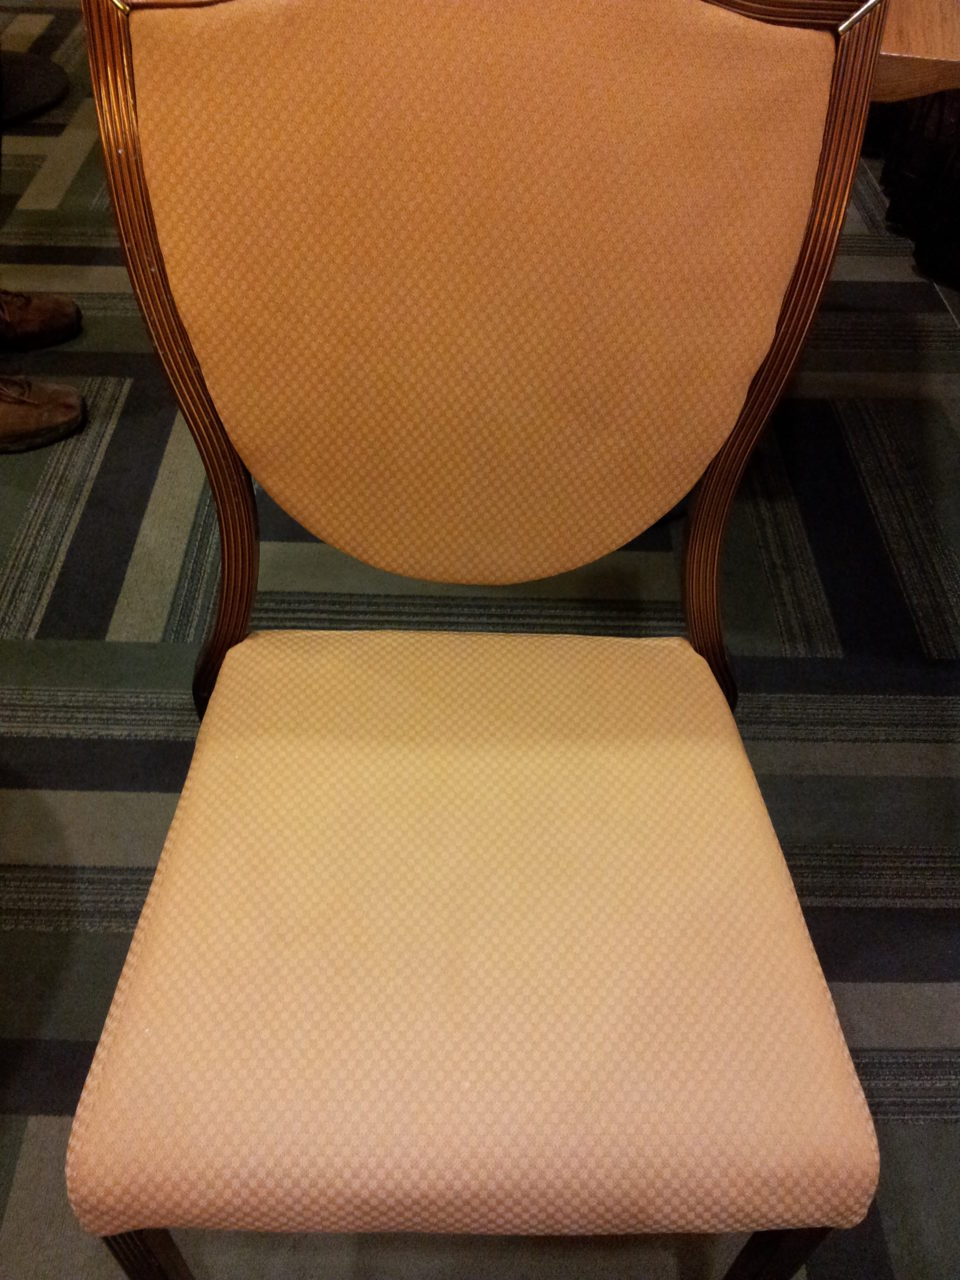 Seat Before & after photos